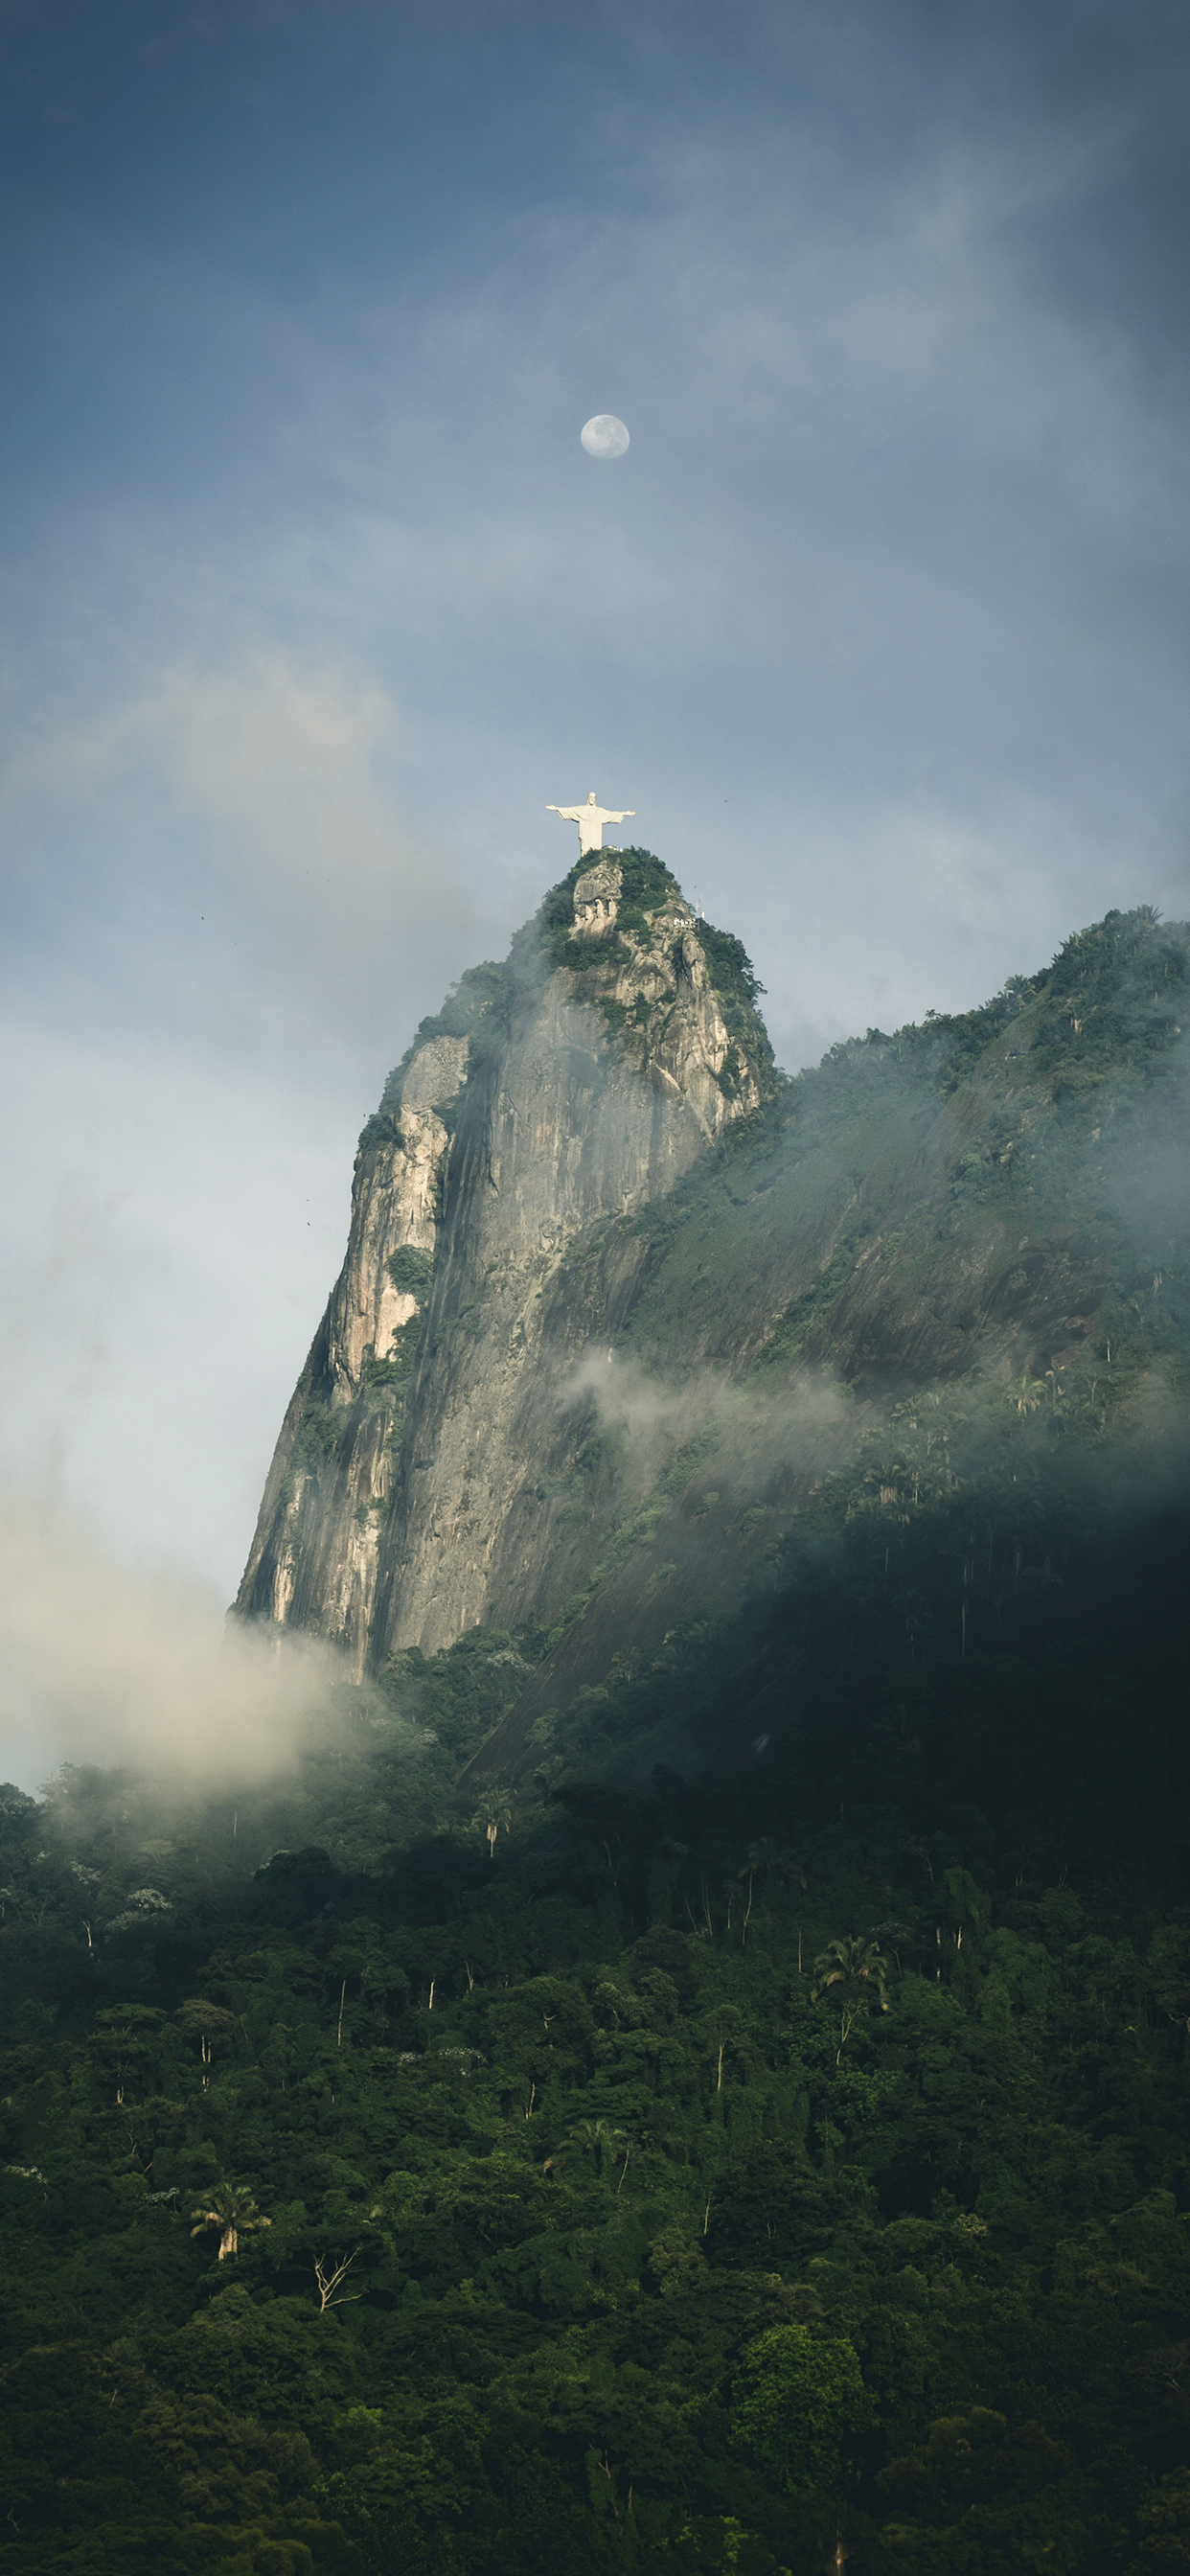 iPhone wallpaper brazil cristo redentor Fonds d'écran iPhone du 27/12/2018